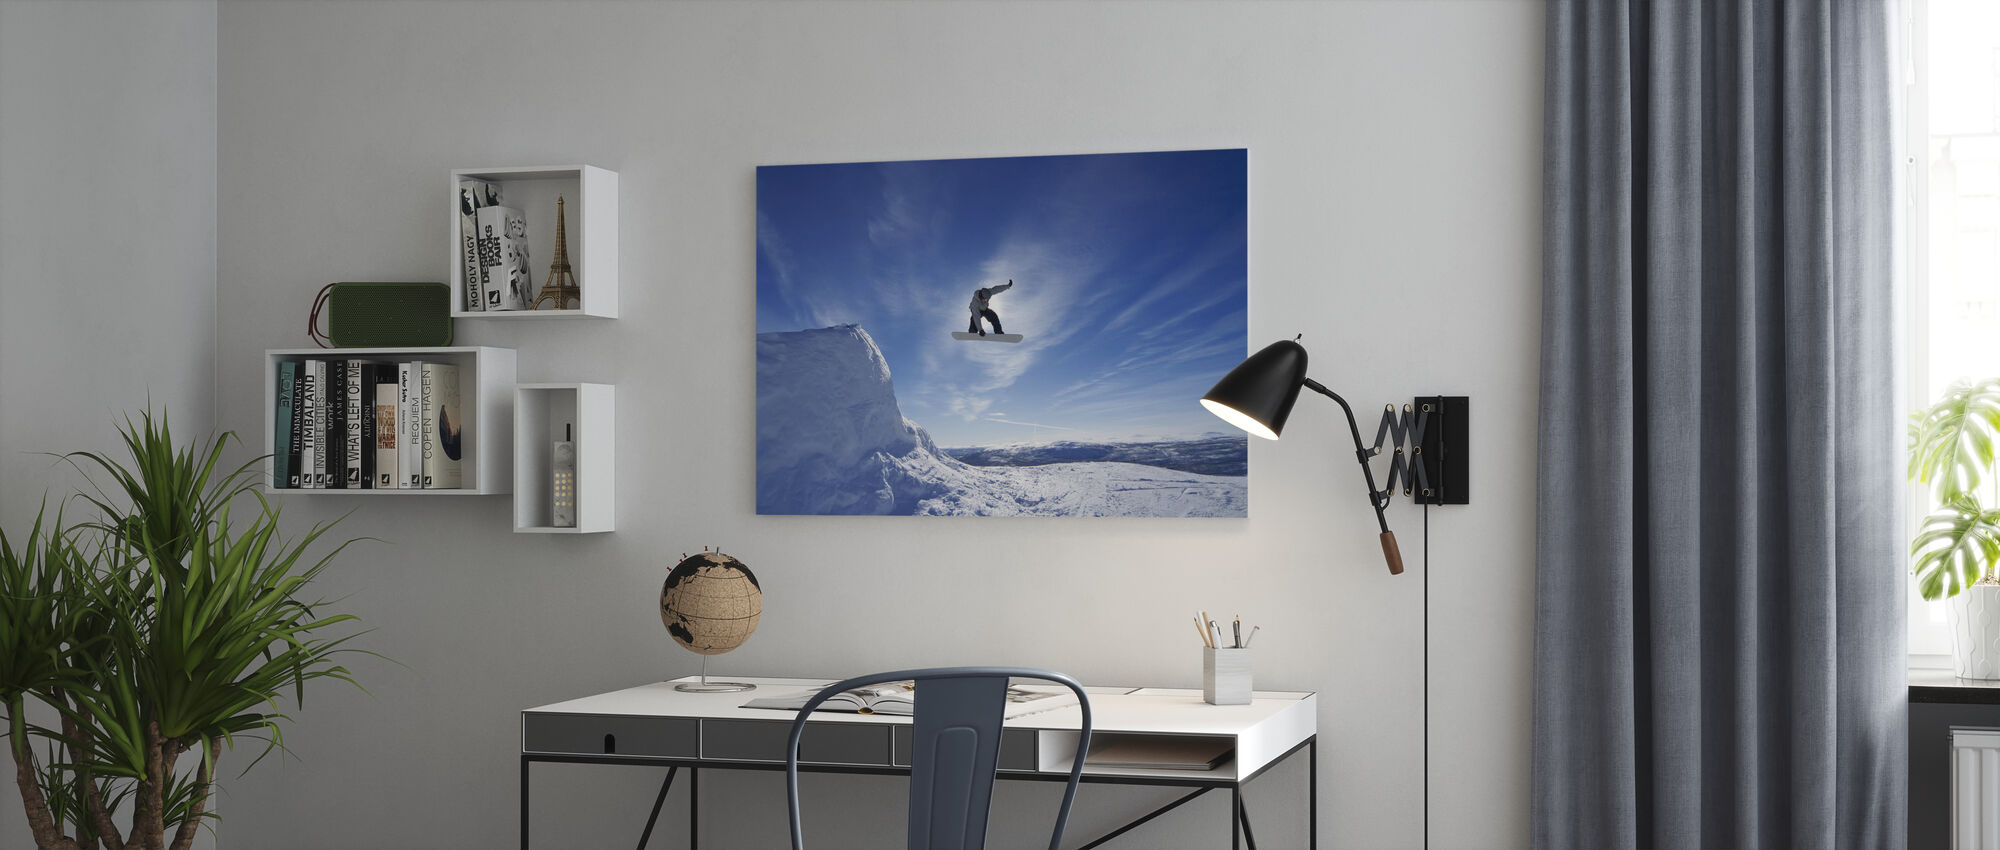 Snowboard Big Air Jump - Canvas print - Office